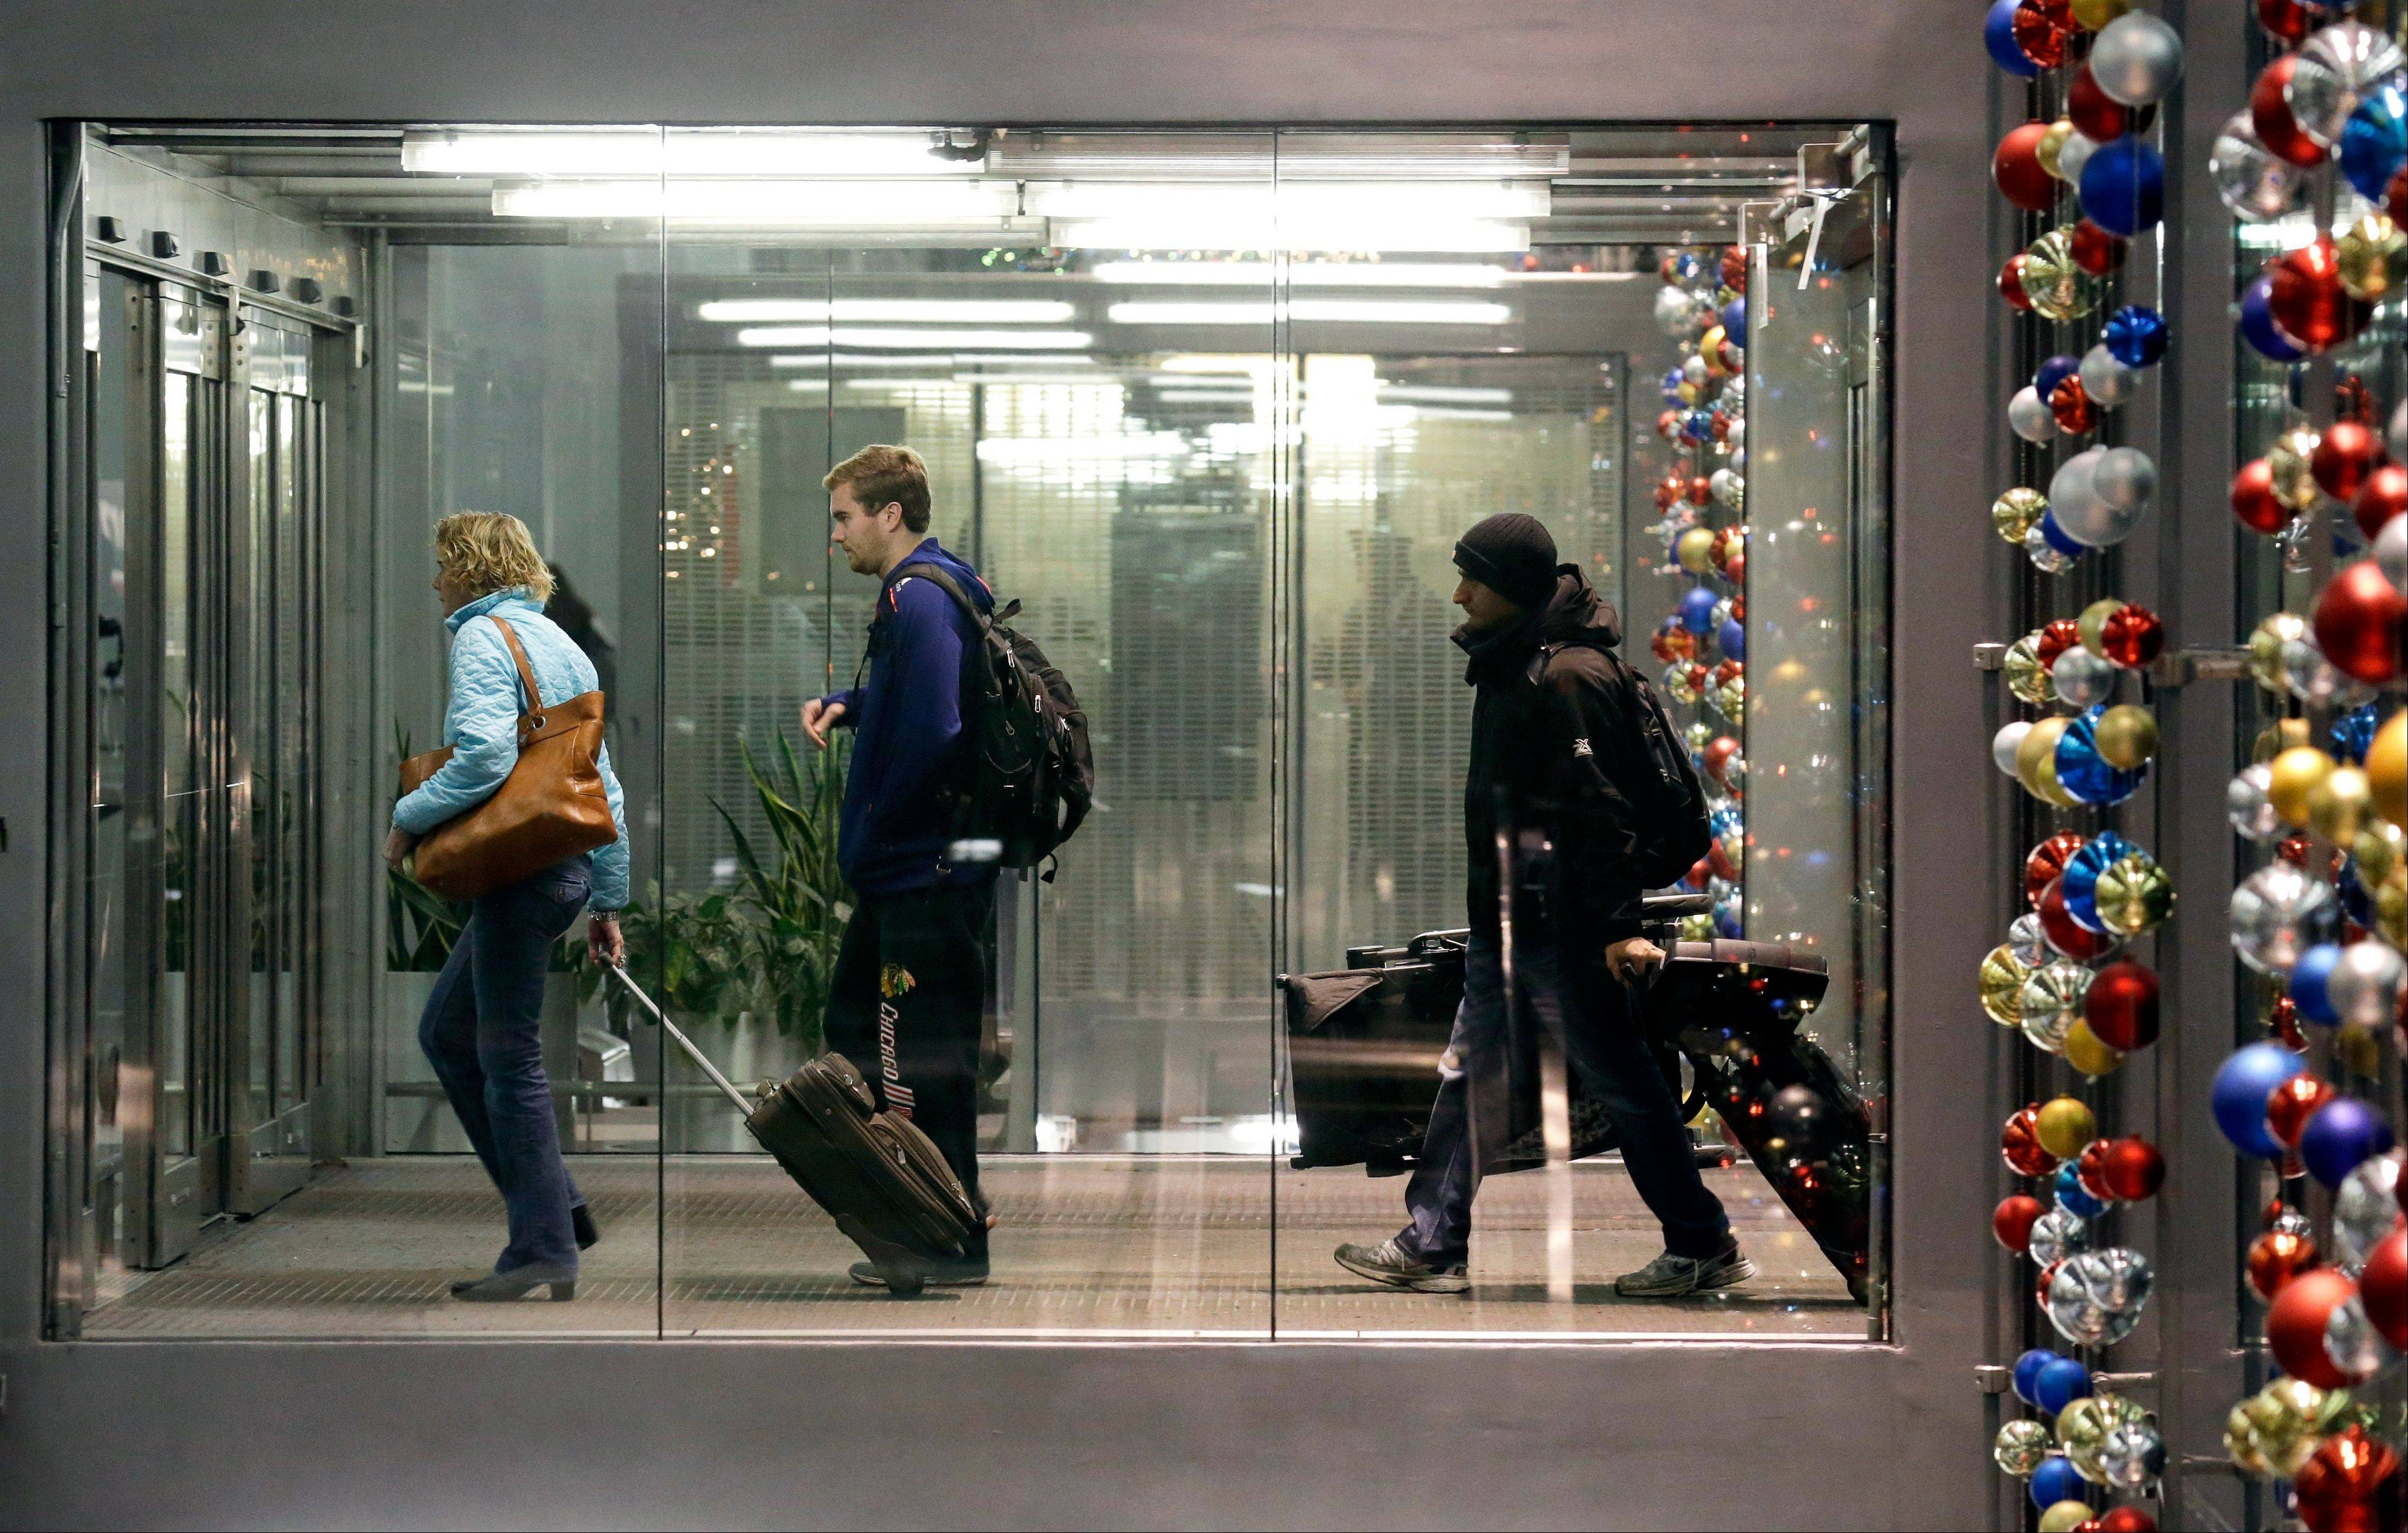 Associated Press Passengers walk through Terminal 3 at O'Hare International Airport in Chicago on Saturday, Dec. 21. The National Weather Service issued a hazardous weather outlook for north central Illinois, northeast Illinois and northwest Indiana on Saturday morning.